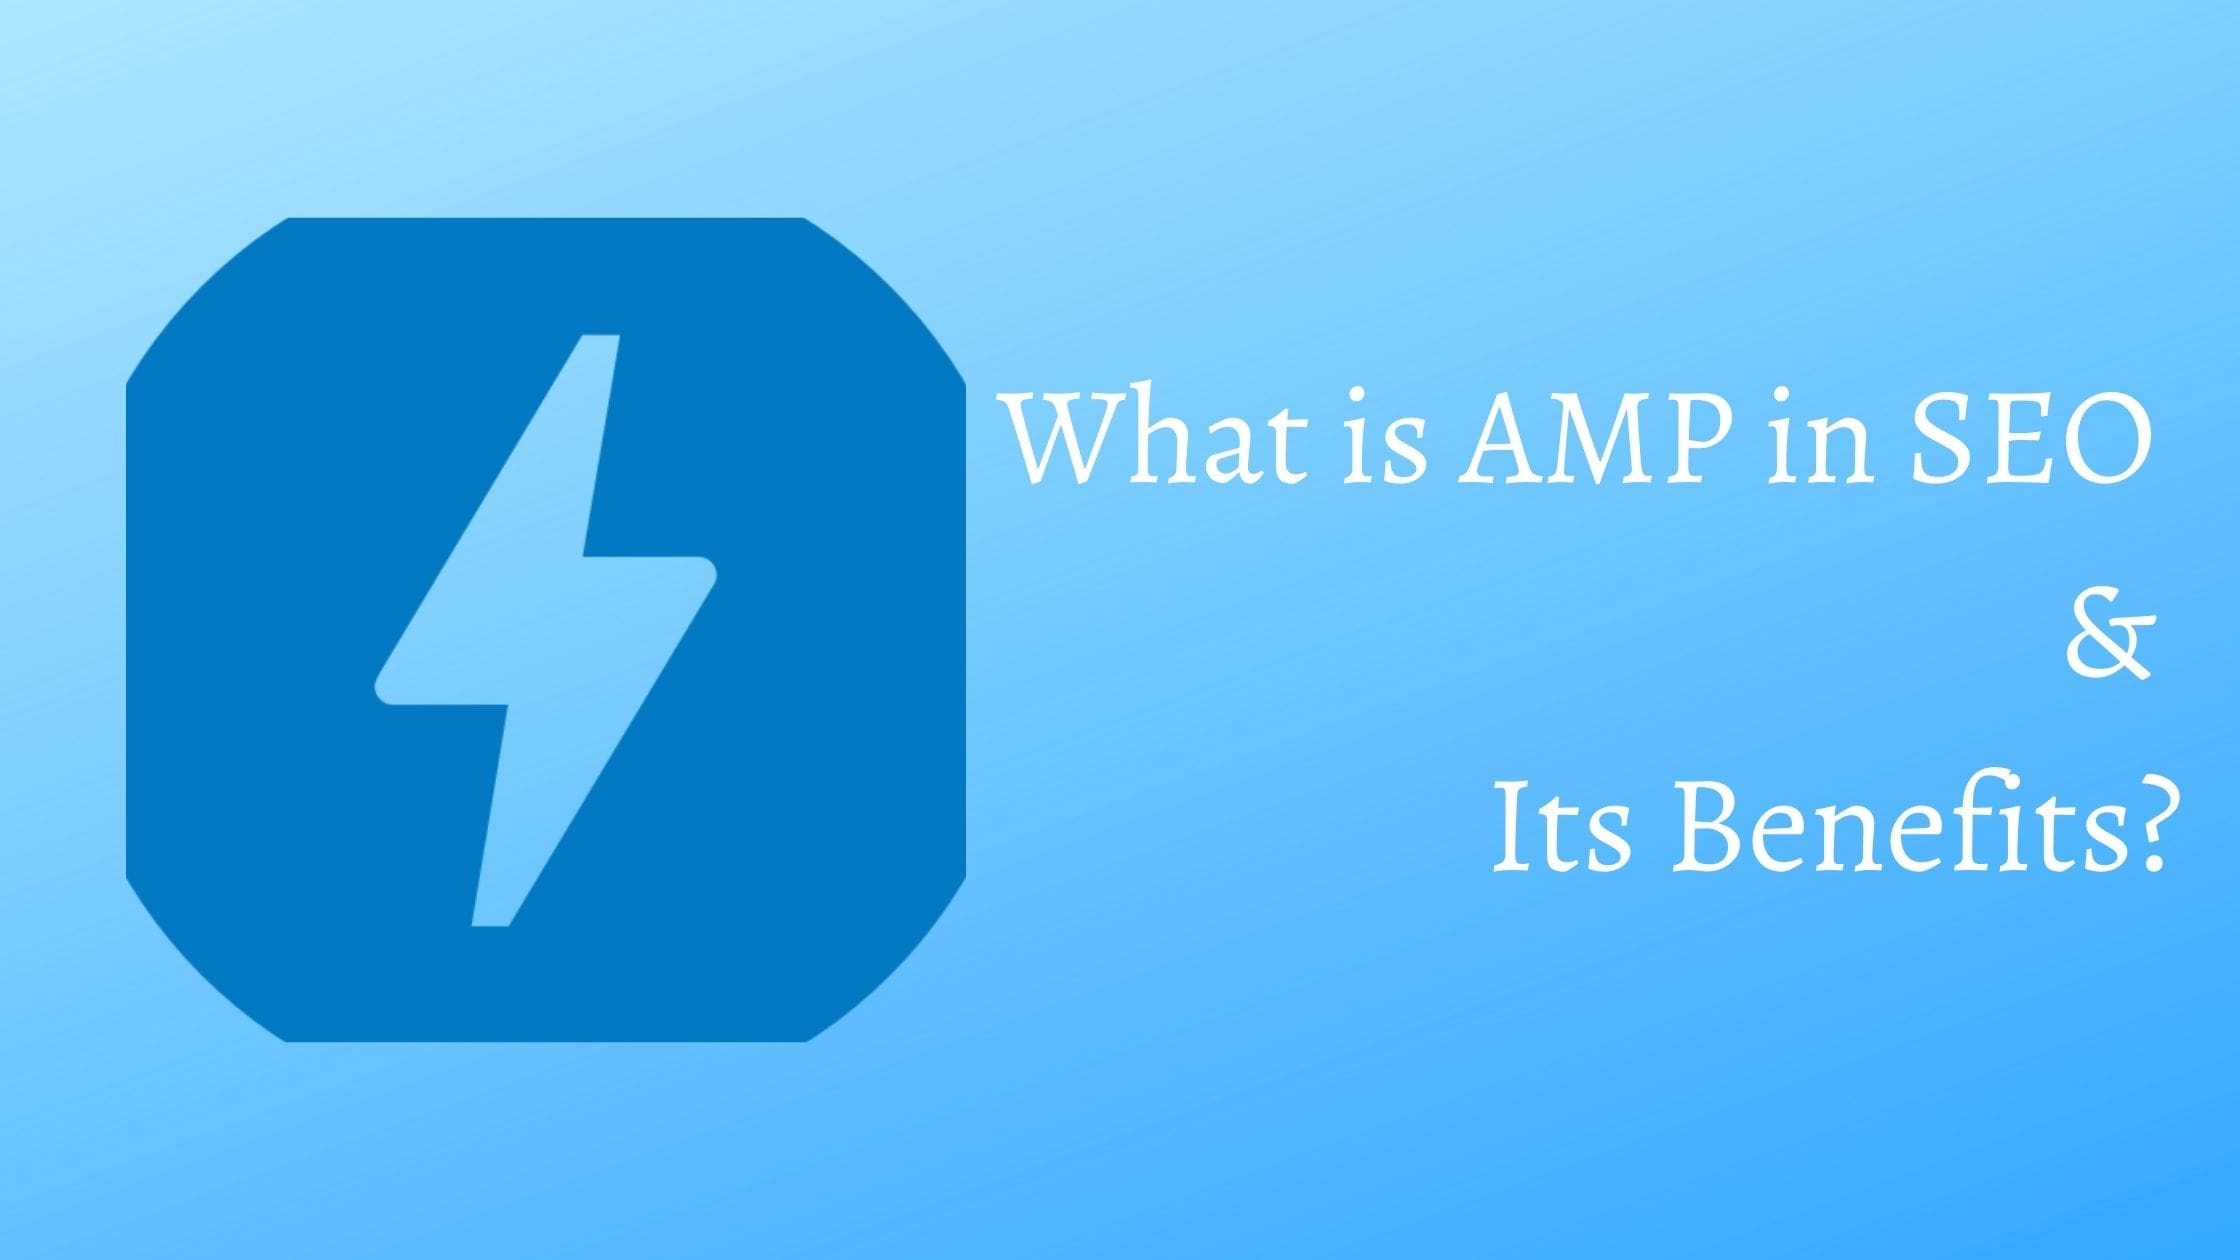 What Is AMP In SEO & Its Benefits?